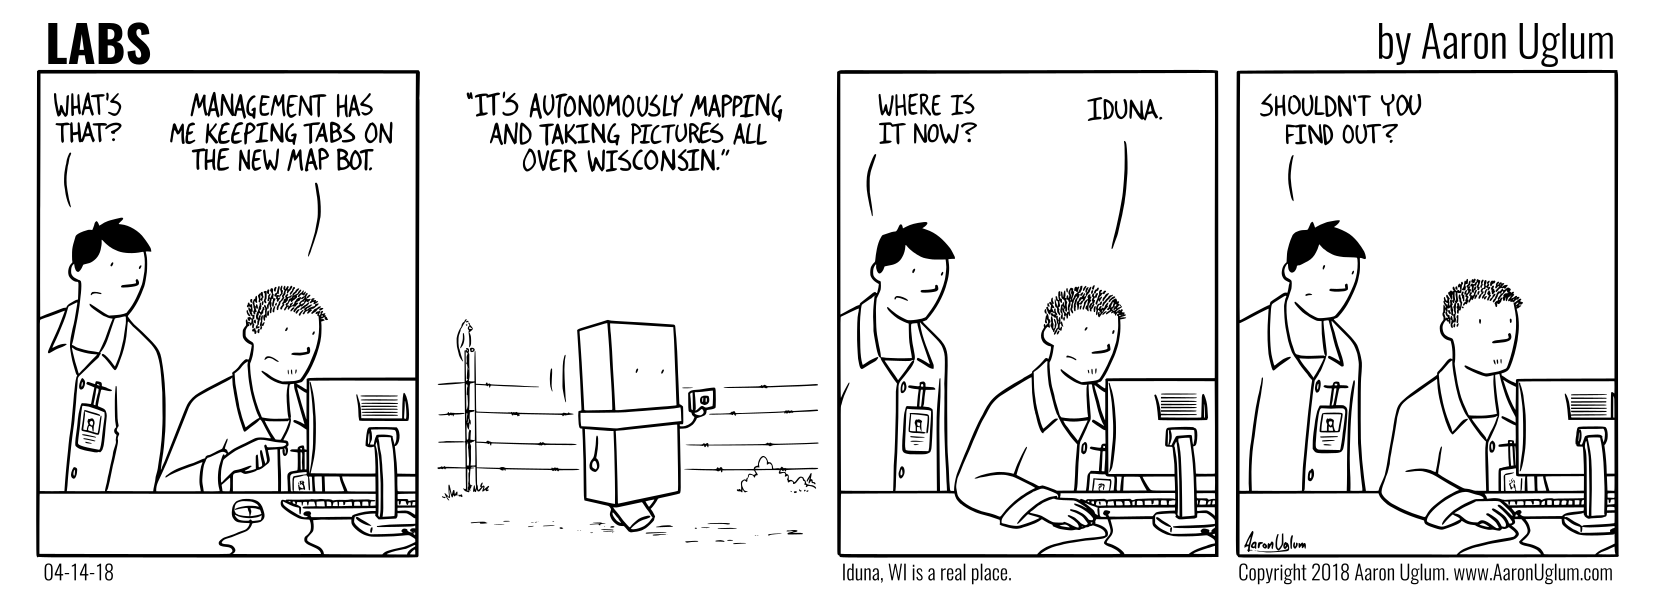 LABS Cartoon 04/14/18 - The Map Bot